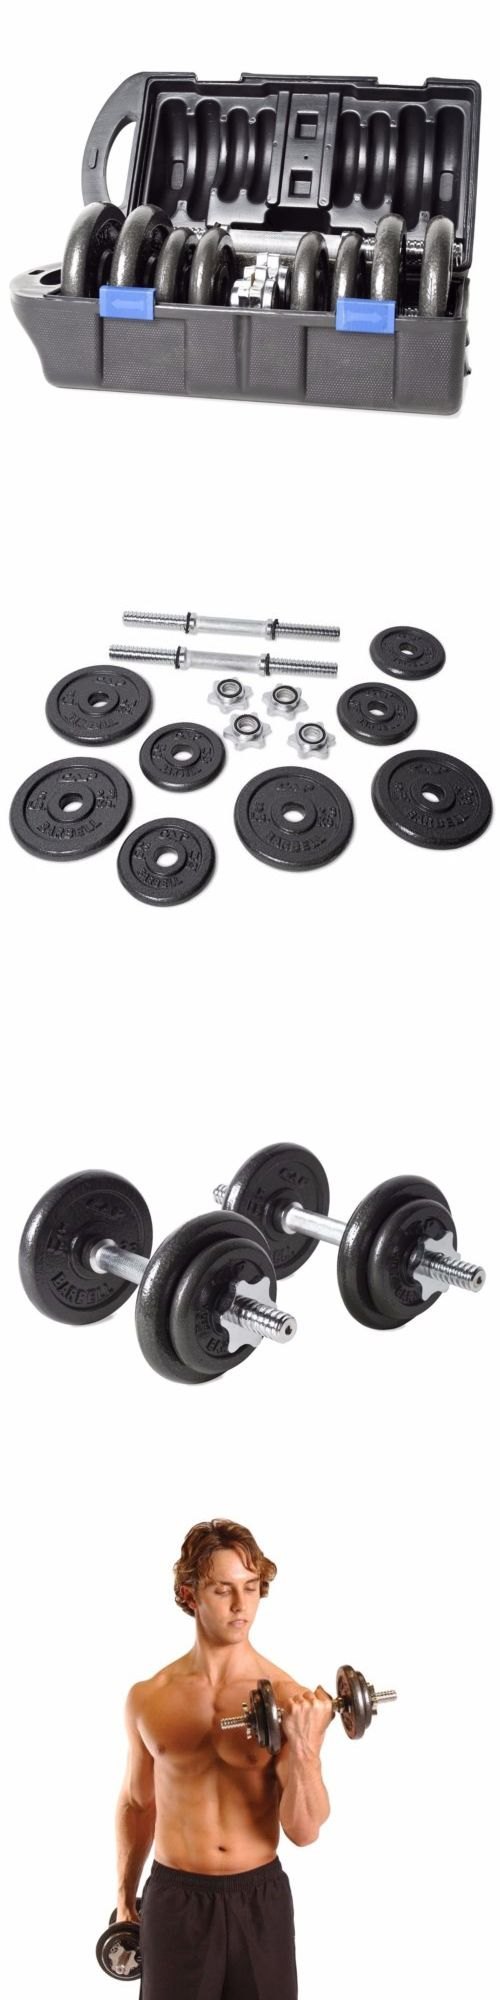 Dumbbells 137865: Dumbbell Weight Set 40 Lbs Pair Adjustable Body Workout Free Weights Portable -> BUY IT NOW ONLY: $71.49 on eBay!